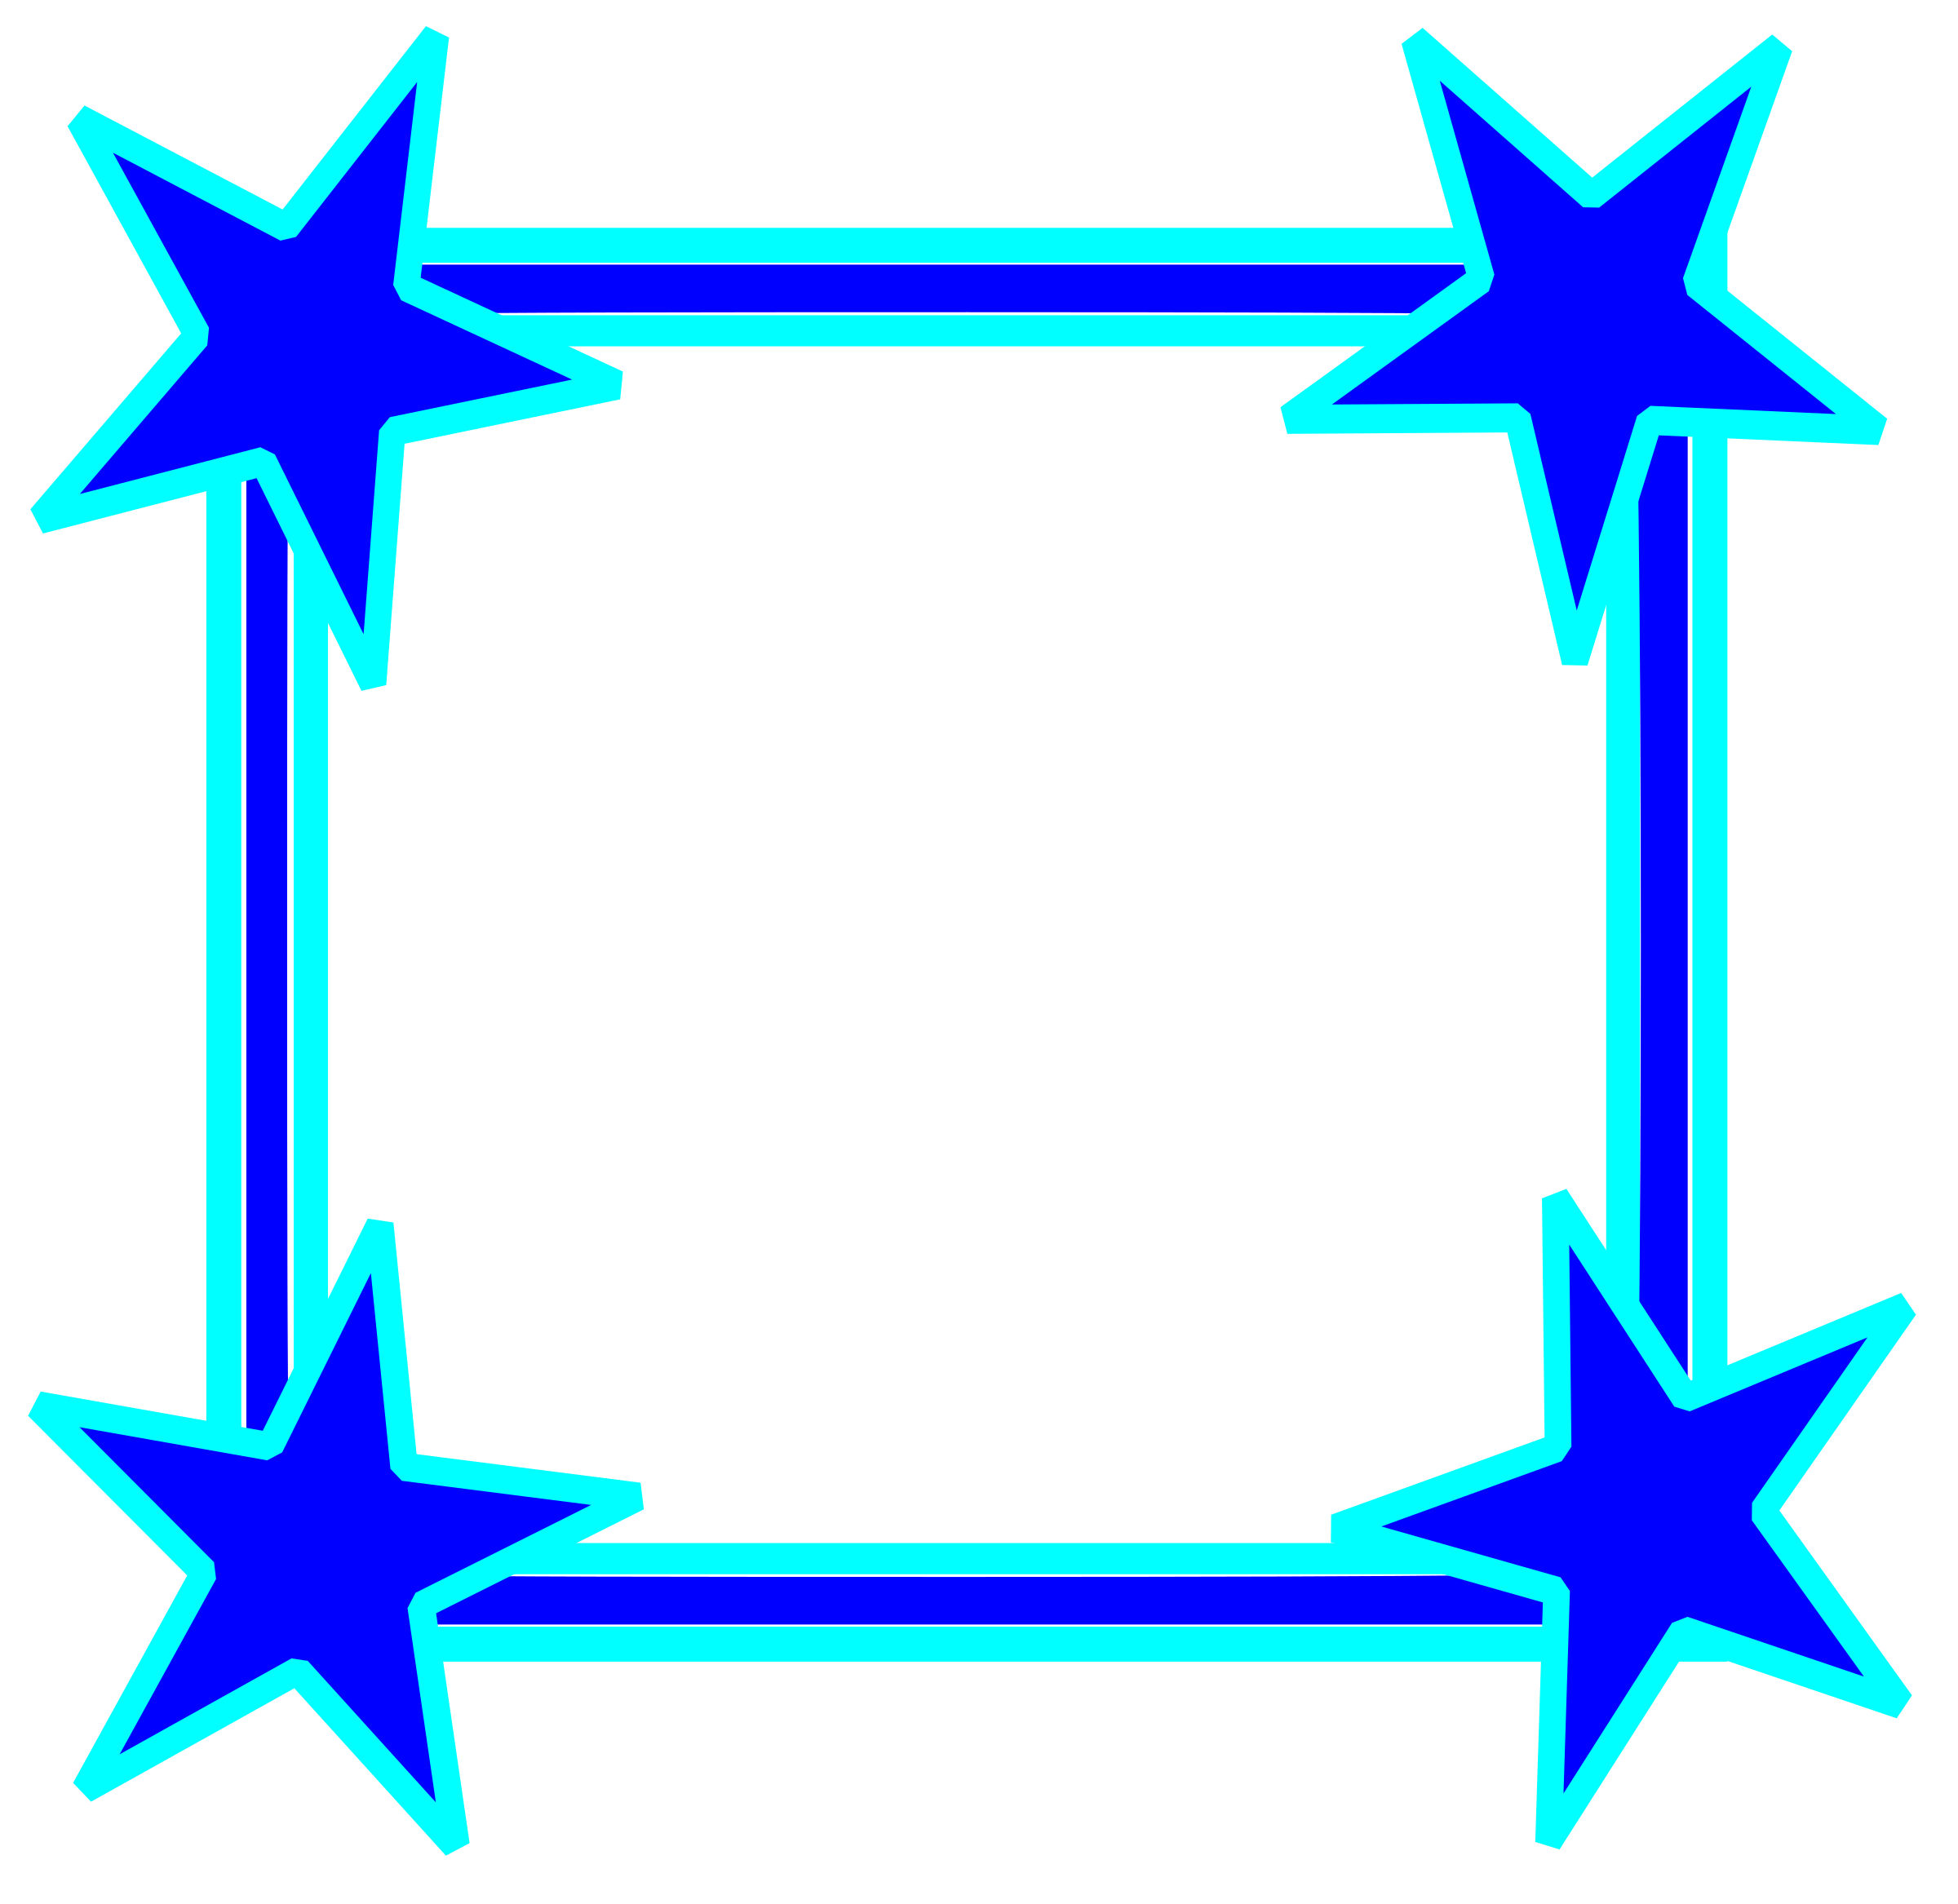 Simple Bright Blue Star Cornered Frame by GR8DAN